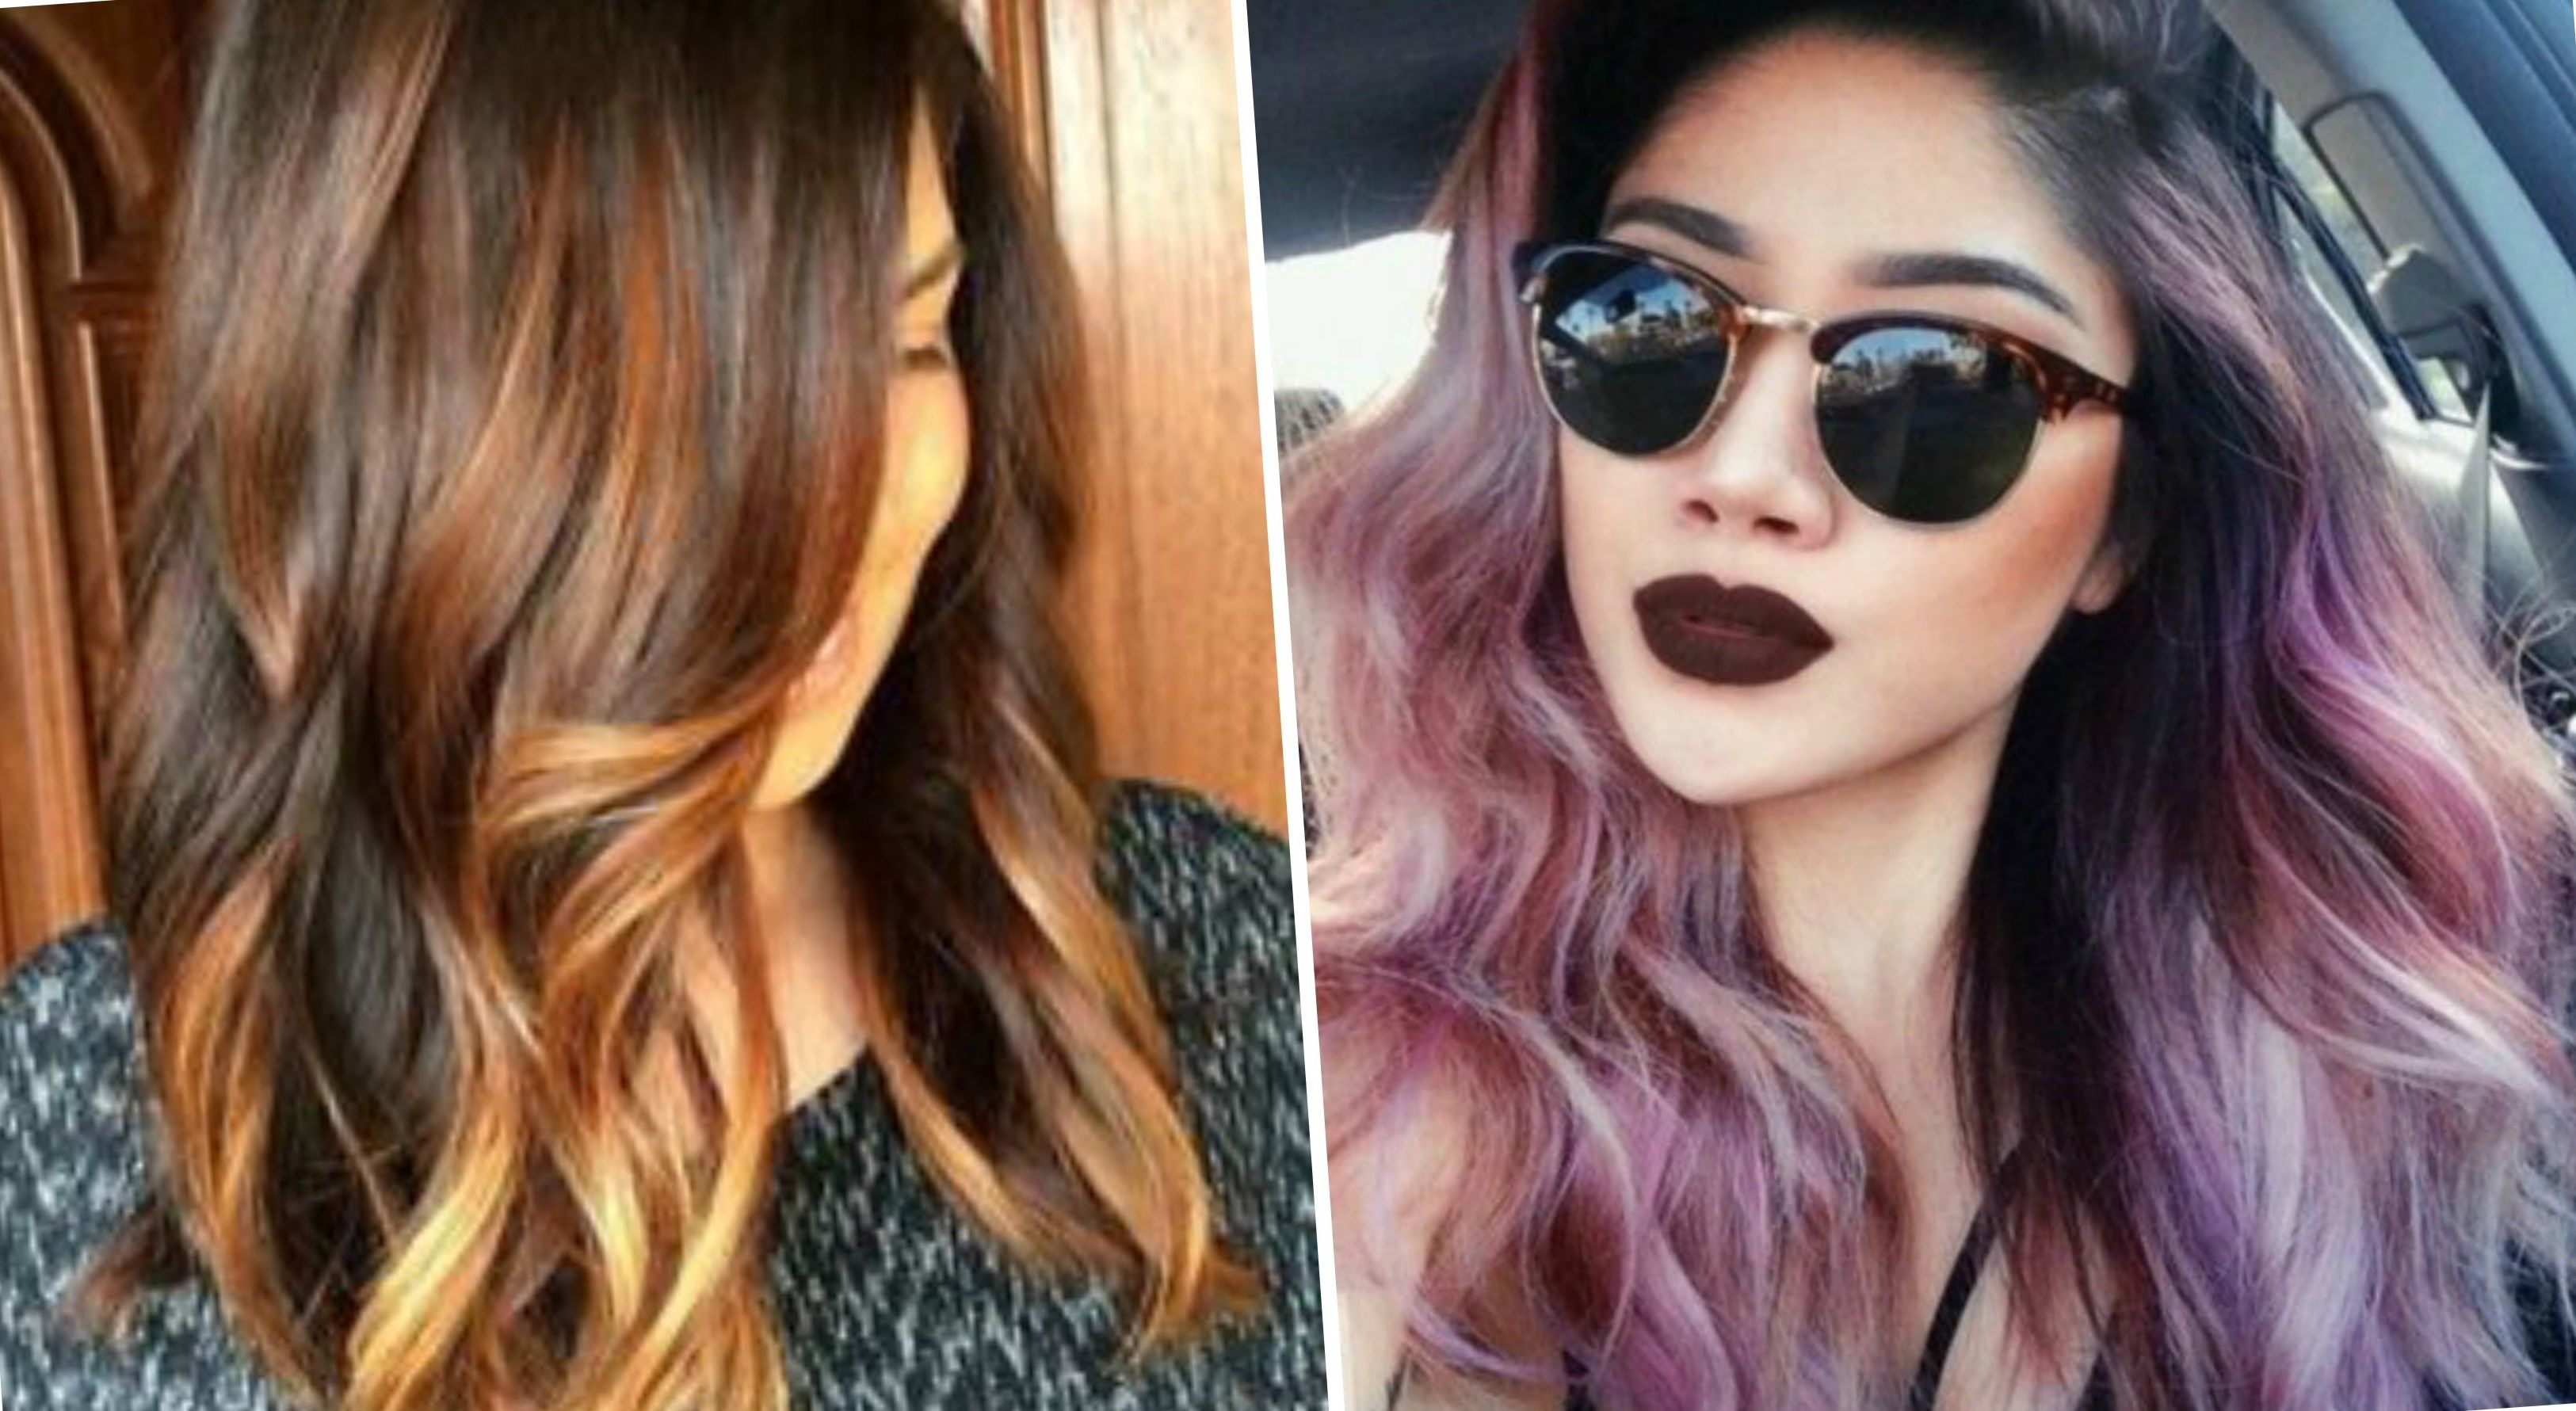 New Hair Dye Styles: Pin By Anna Wise On New Hair Ideas 2016-2017